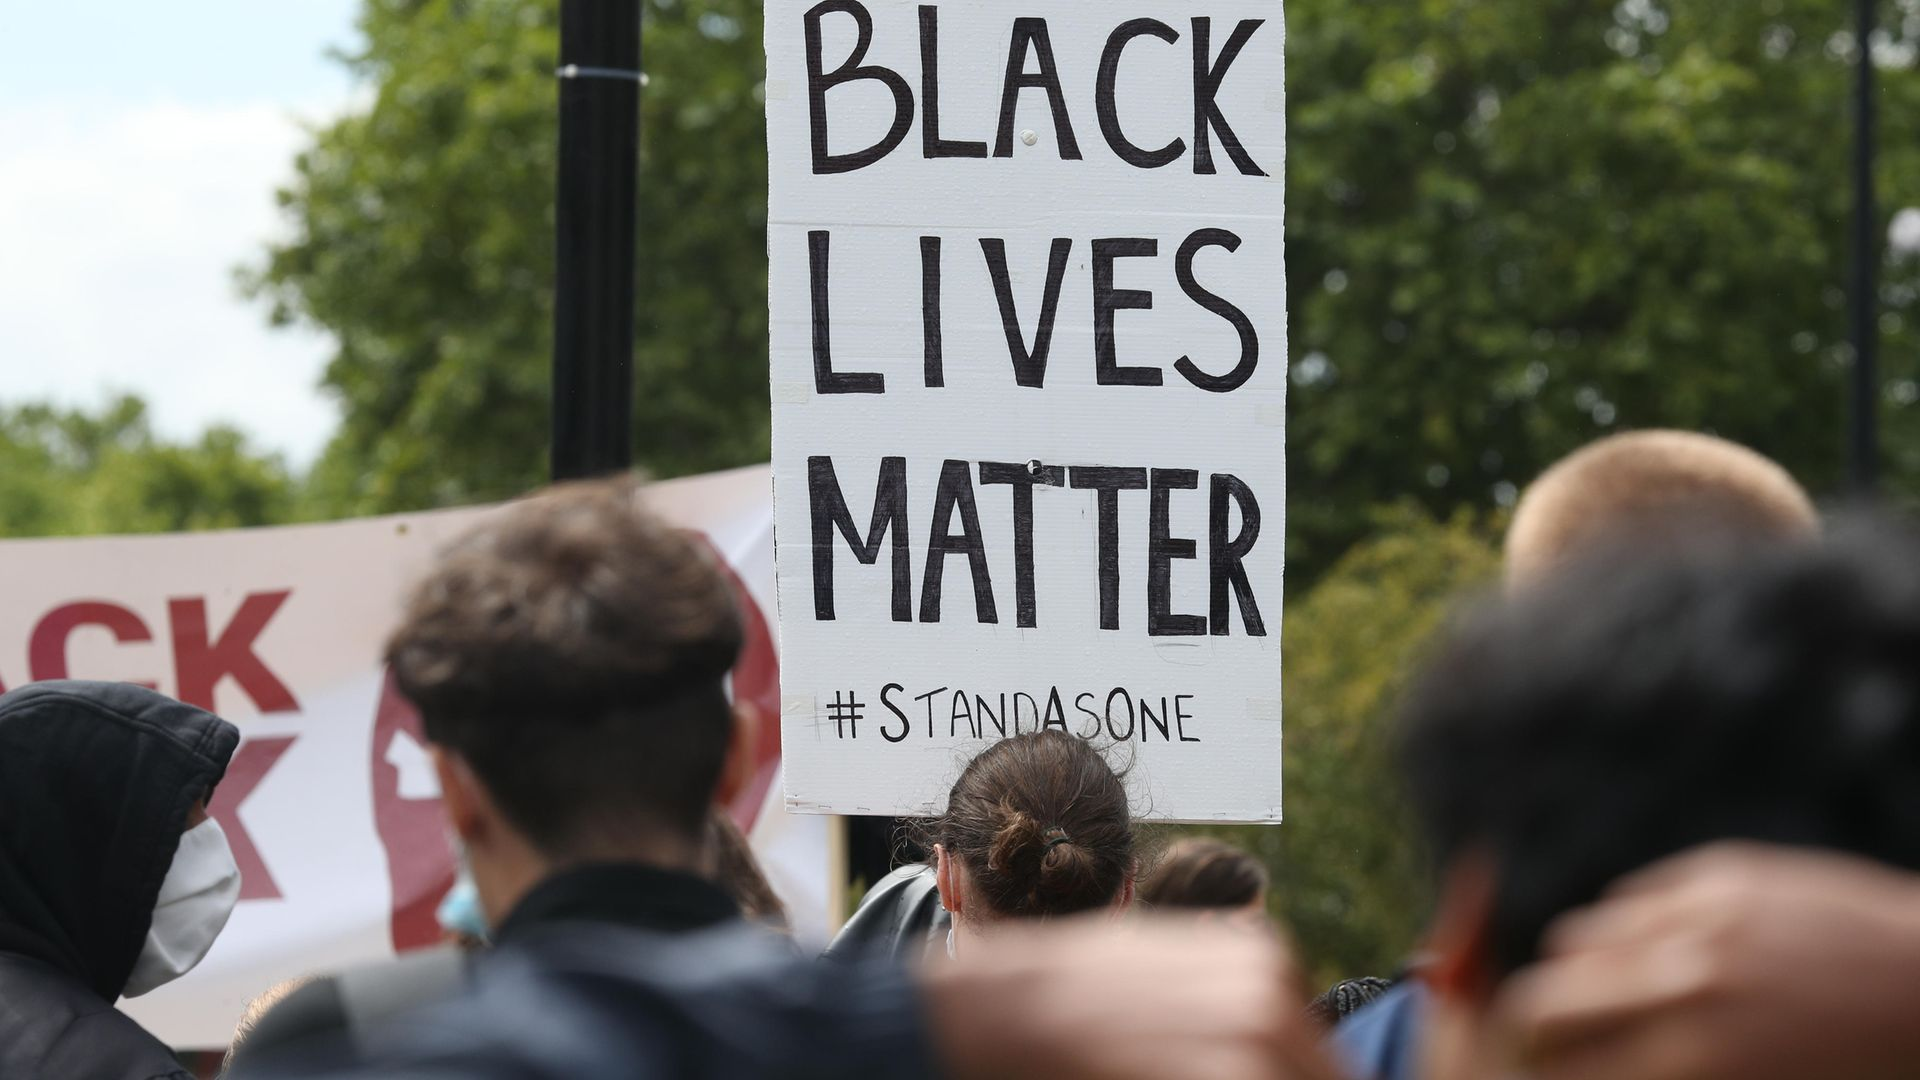 Demonstators during a Black Lives Matter protest at Marble Arch, central London, sparked by the death of George Floyd, who was killed on May 25 while in police custody in the US city of Minneapolis - Credit: PA